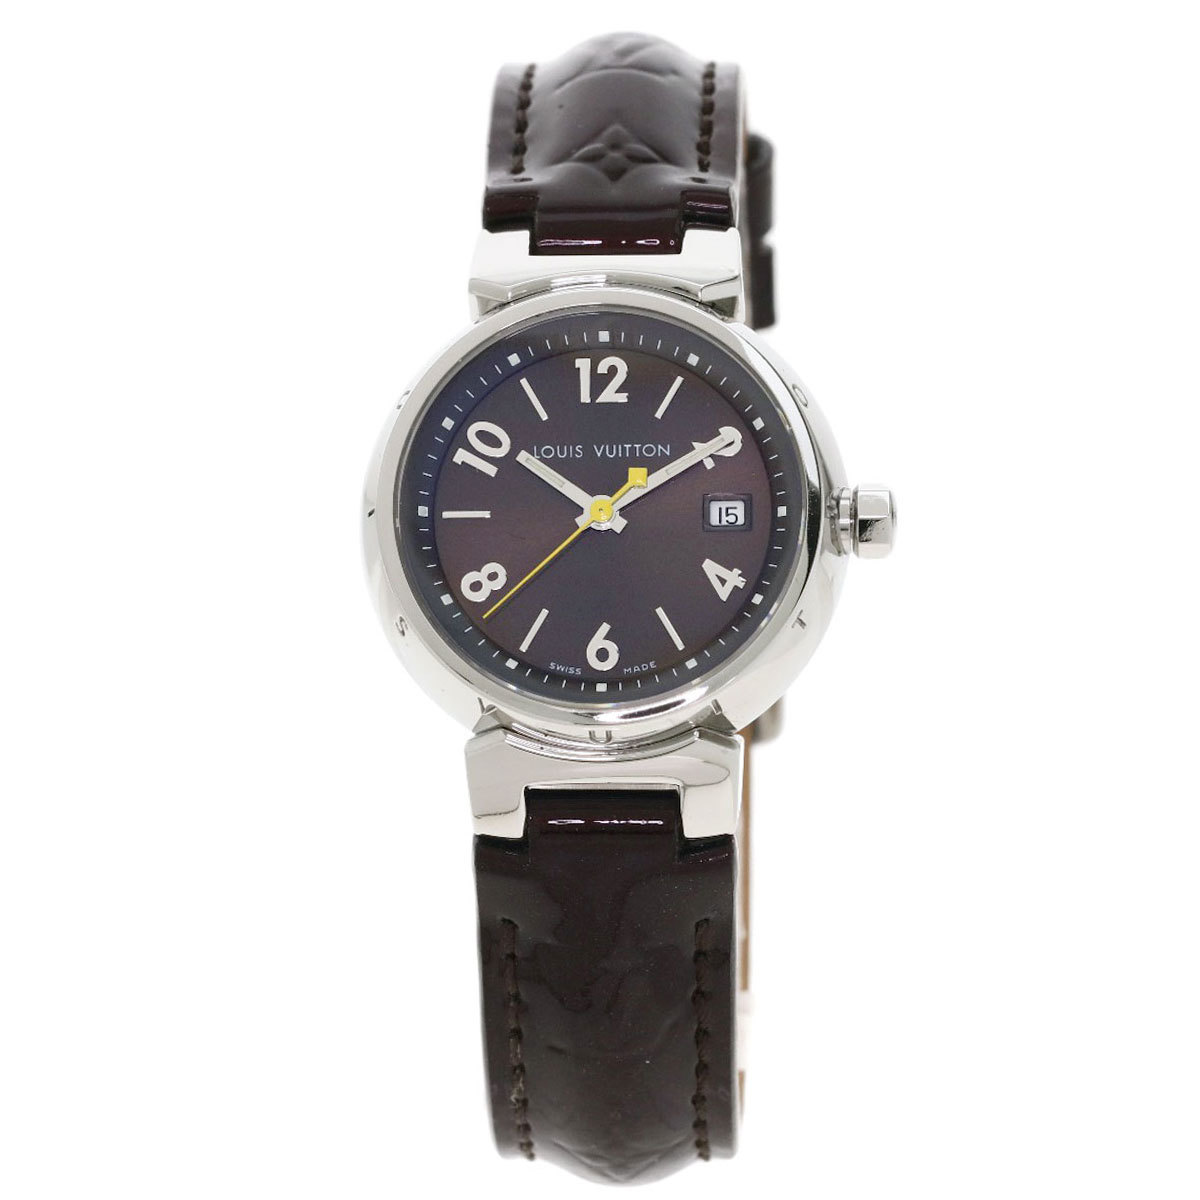 Louis Vuitton Q1211 Tambour Watch Stainless Steel Leather Ladies